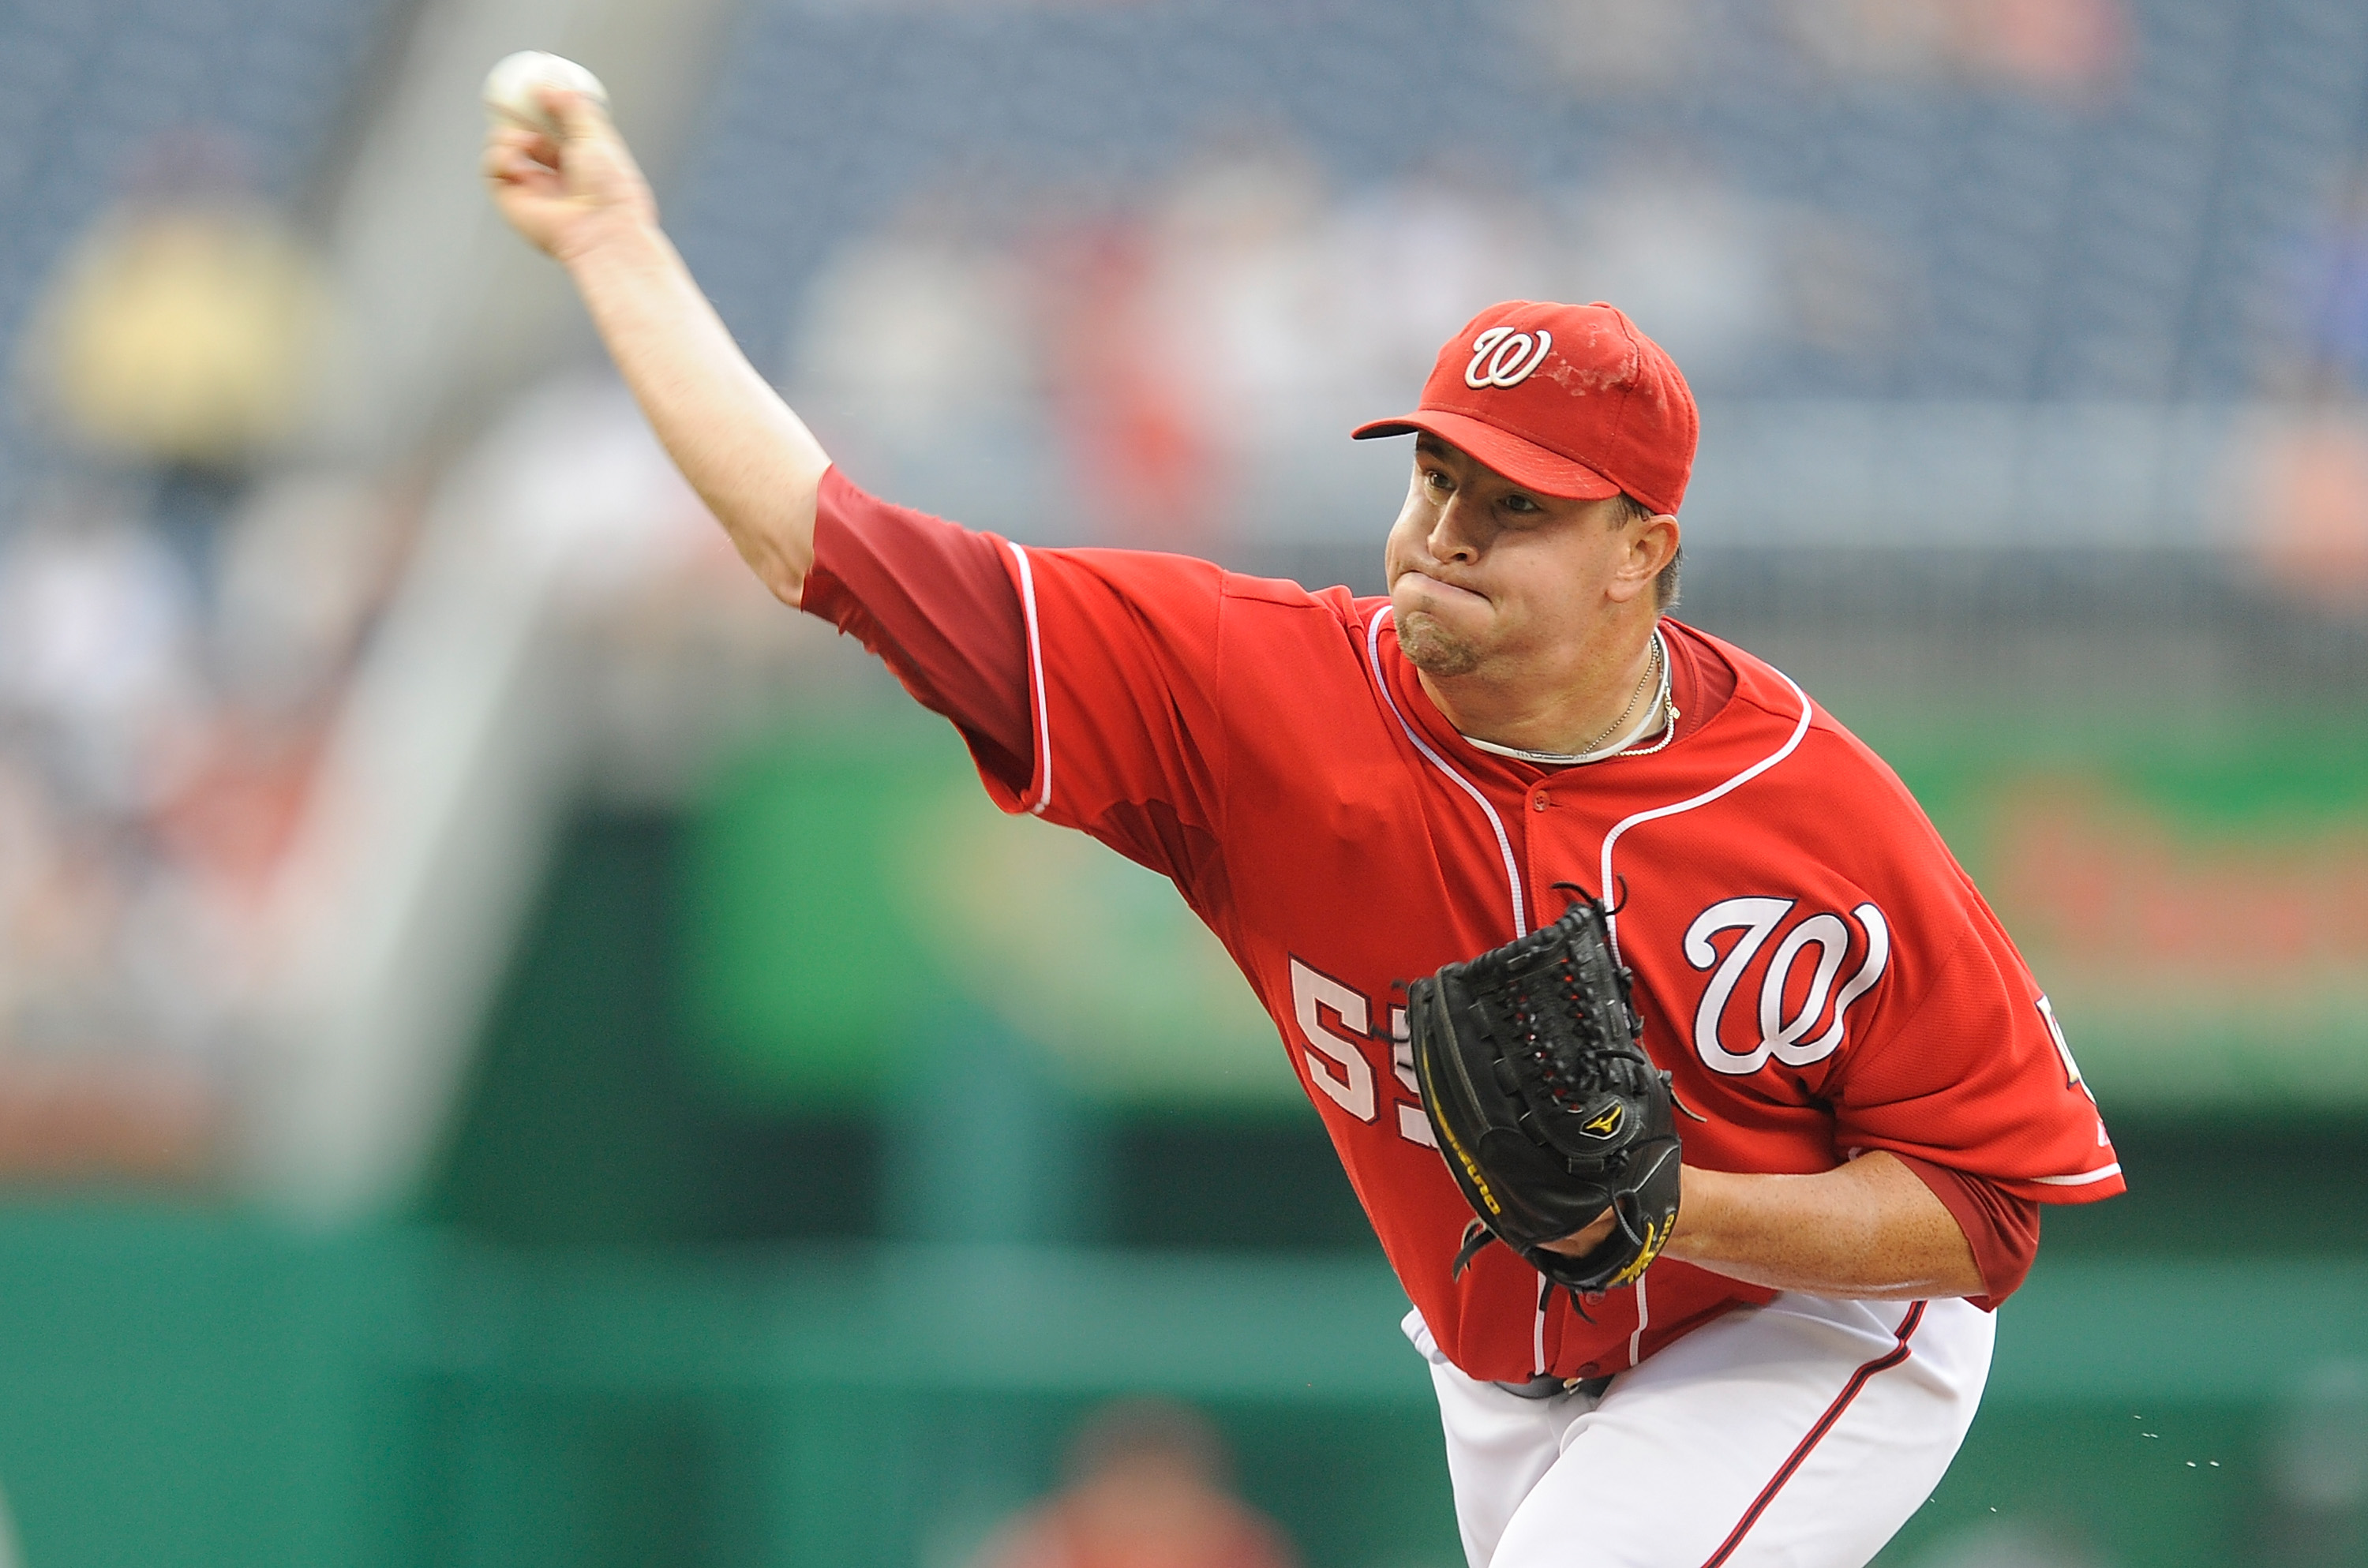 WASHINGTON - JULY 29:  Matt Capps #55 of the Washington Nationals pitches against the Atlanta Braves at Nationals Park on July 29, 2010 in Washington, DC.  (Photo by Greg Fiume/Getty Images)